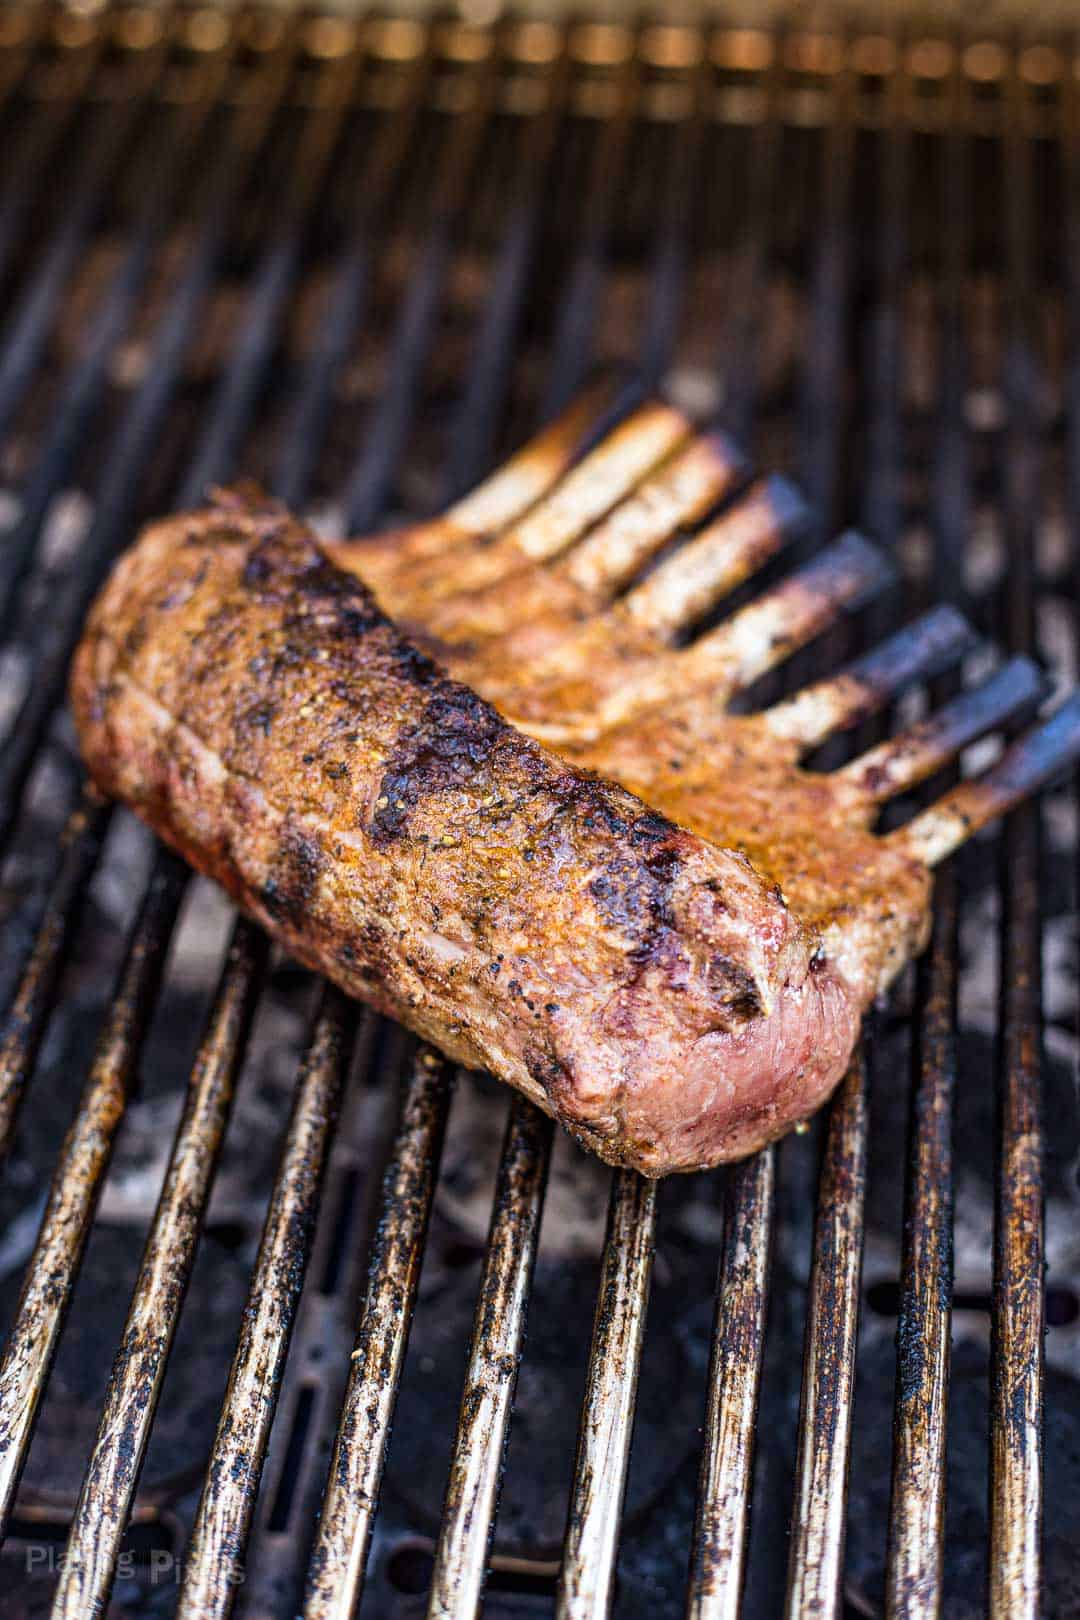 A rack of lamb cooking on a gas grill